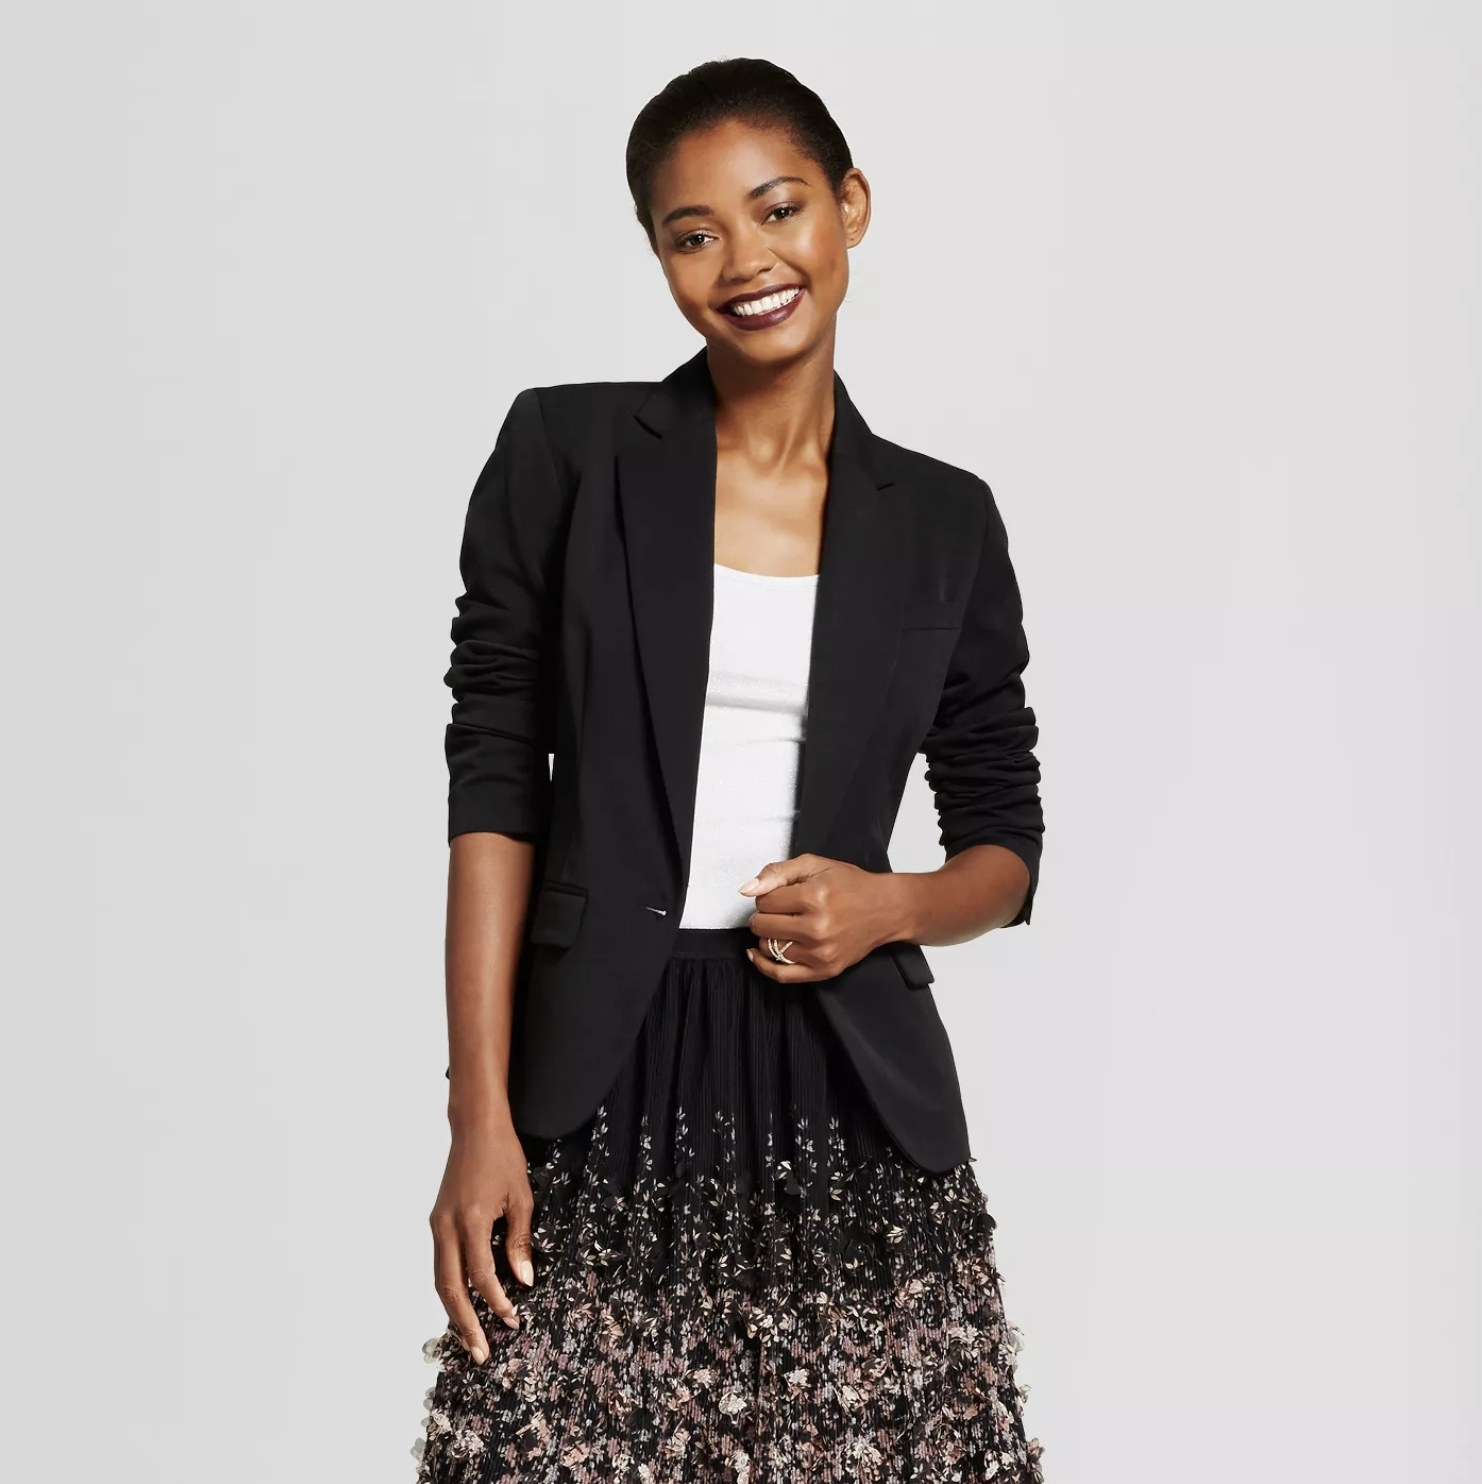 A model wearing a black blazer with the sleeves pushed up to the elbows